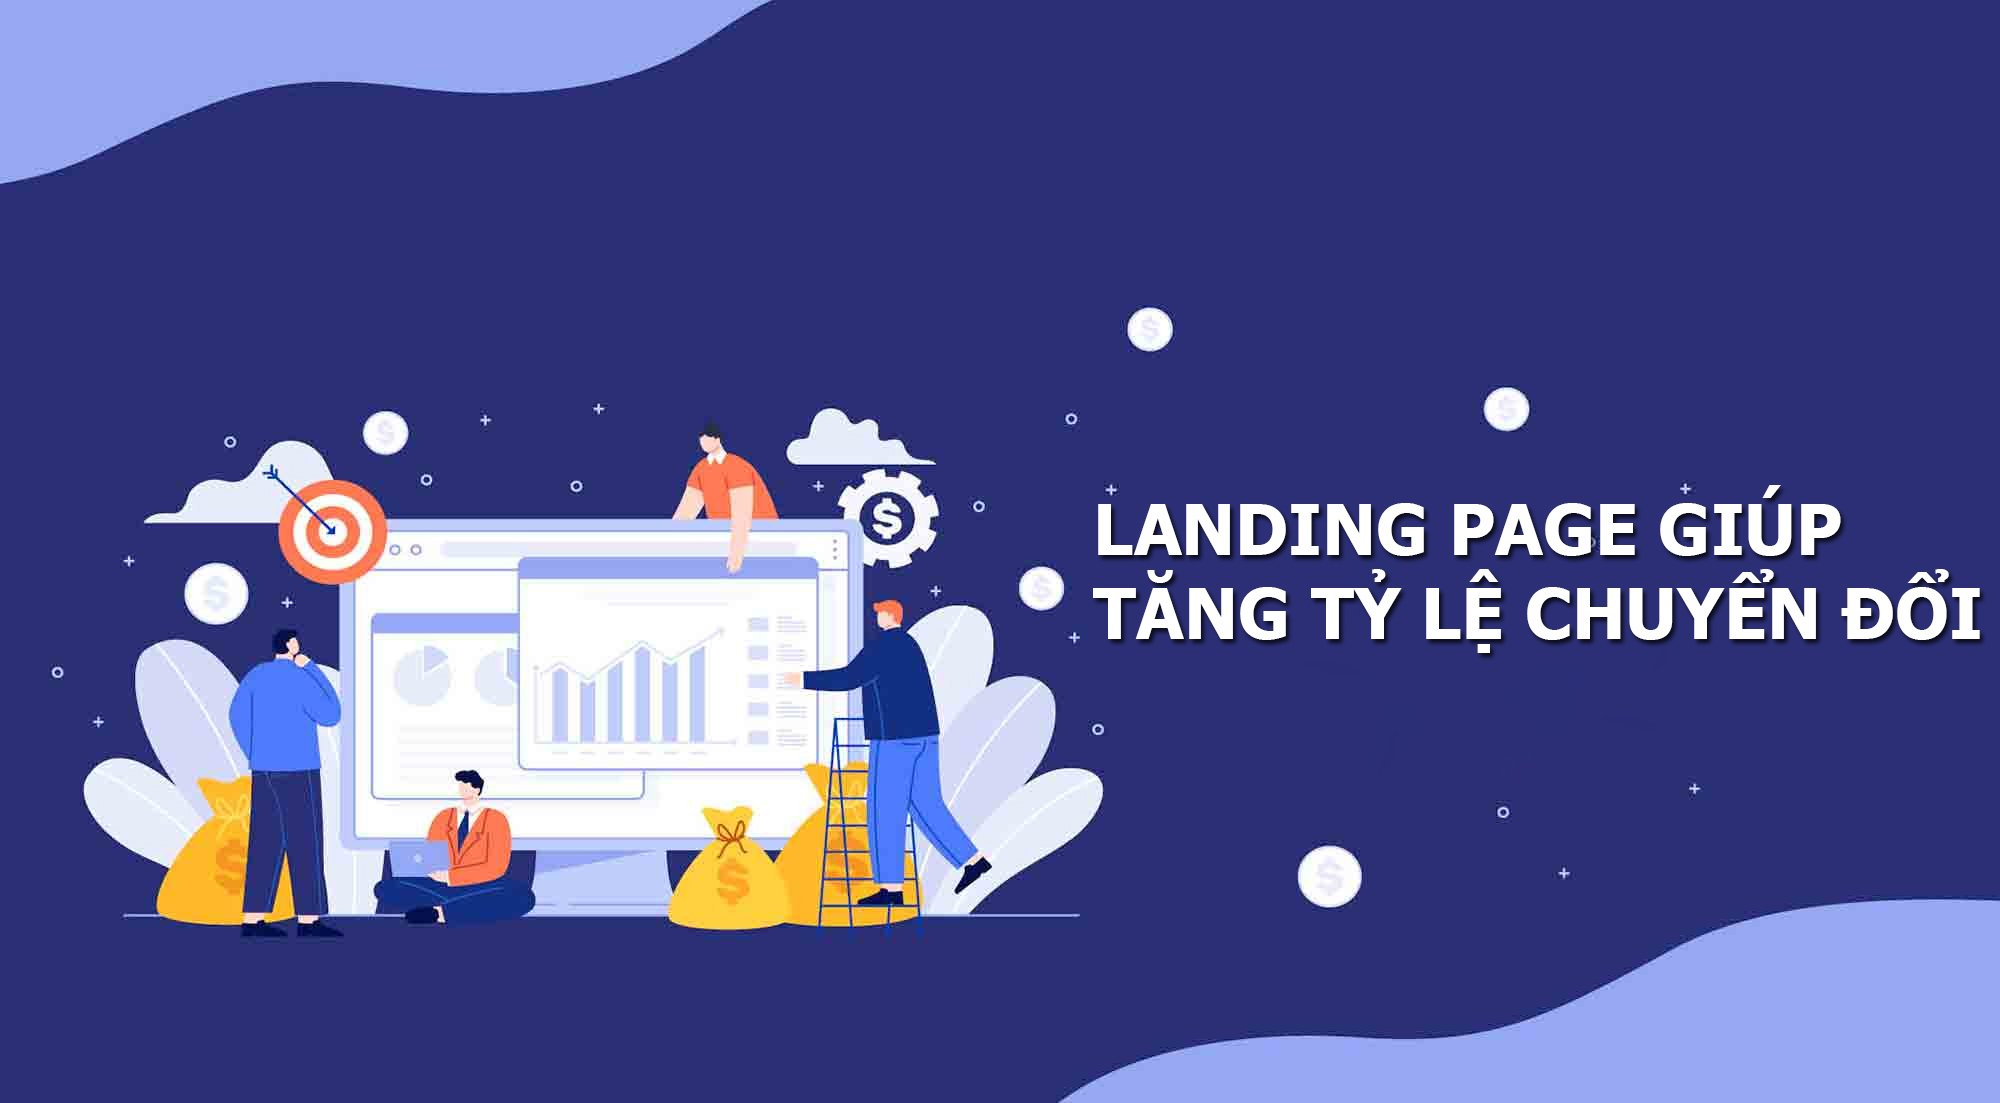 loi-ich-cua-landing-page-doi-voi-chien-dich-digital-marketing